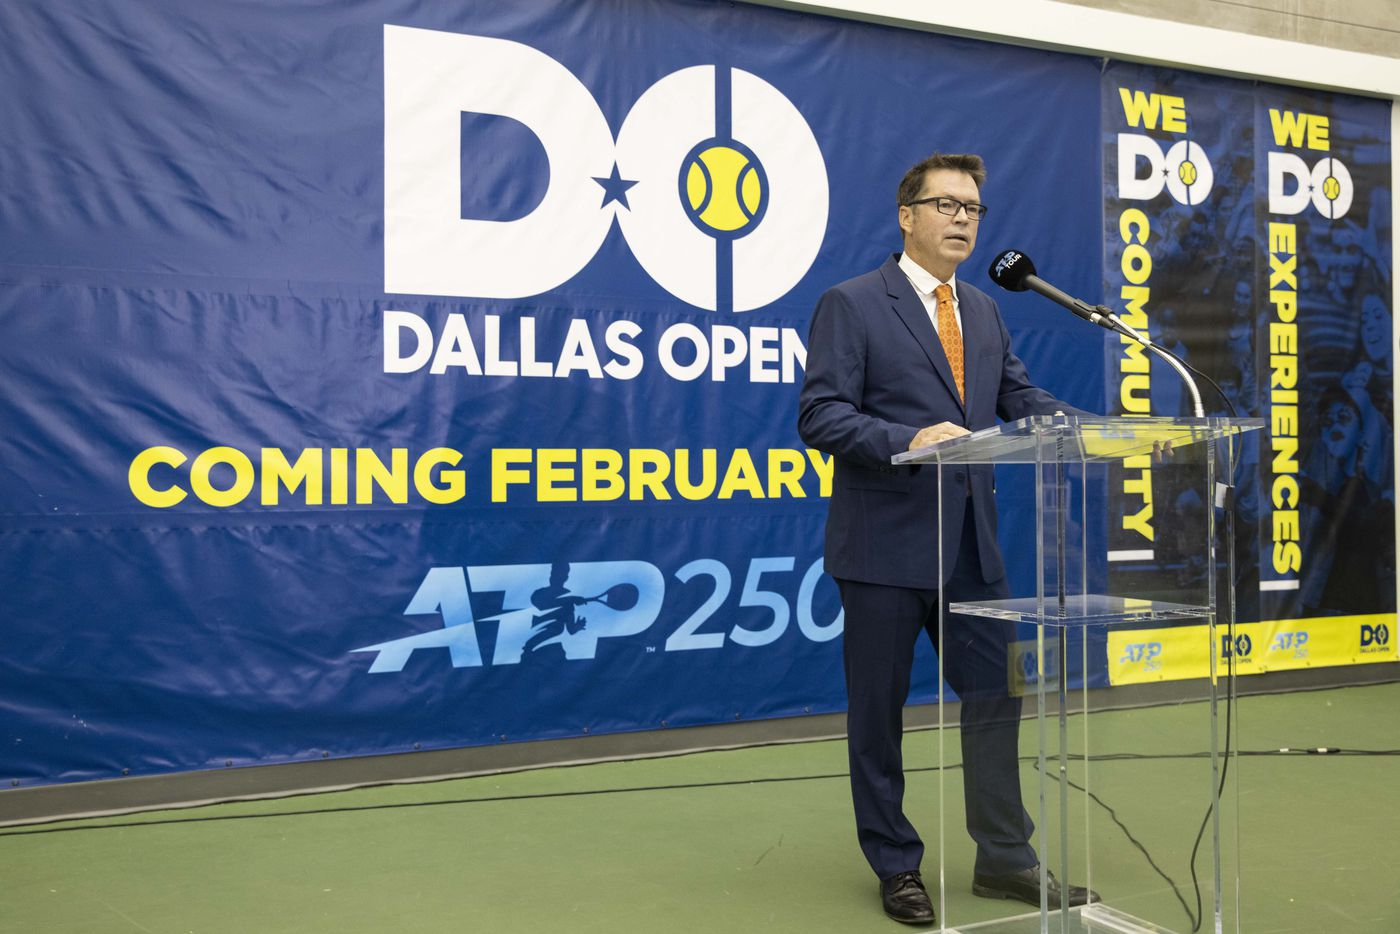 Tournament director Peter Lebedevs speaks during a press conference to announce a new ATP tennis tour event coming to Dallas at the SMU Styslinger/Altec Tennis Complex on Wednesday, May 19, 2021, in Dallas. (Juan Figueroa/The Dallas Morning News)